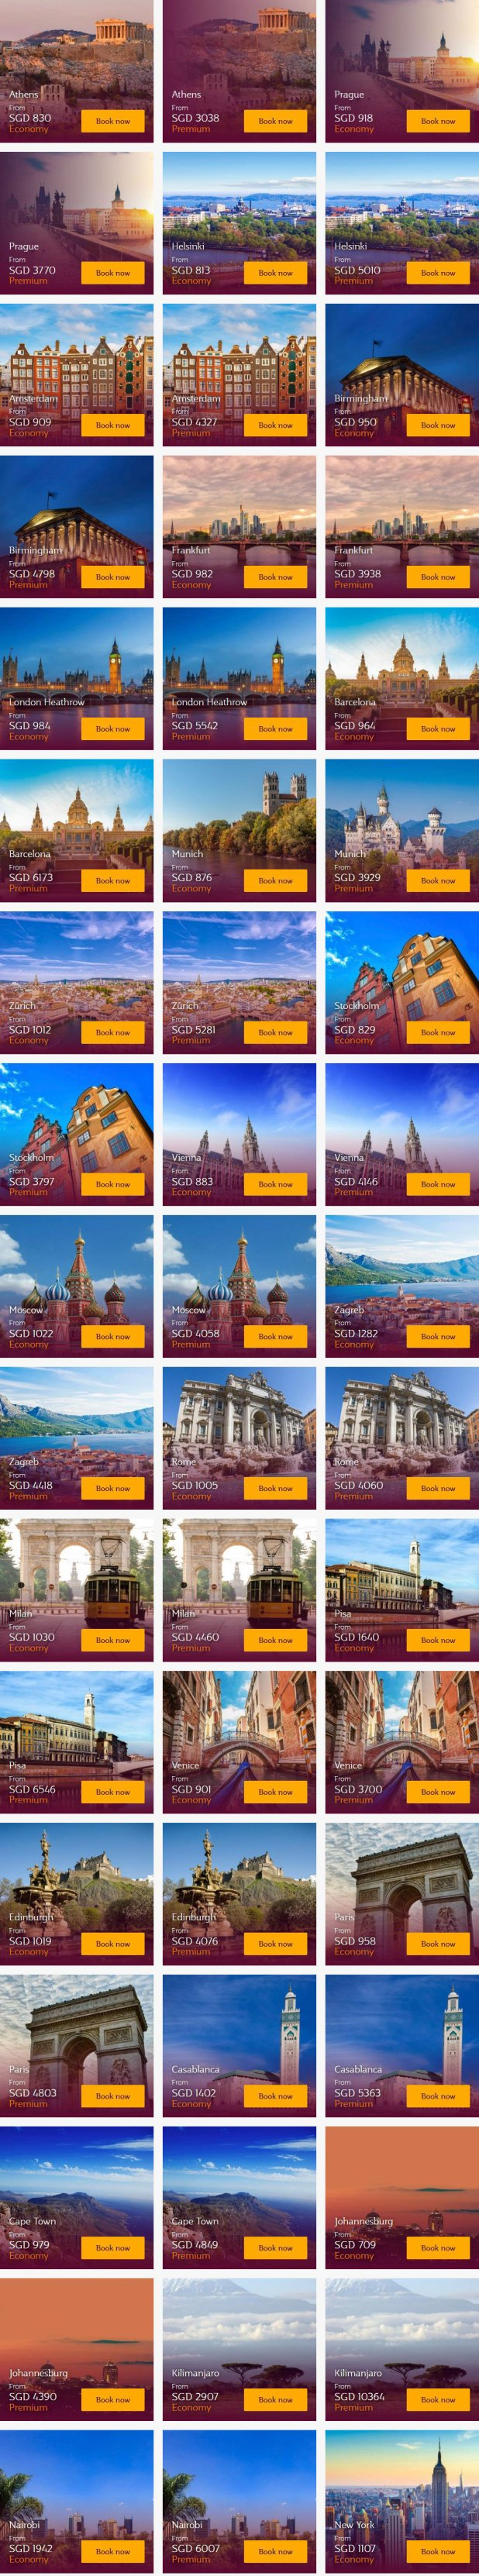 Qatar Airways Special: Fares from $830